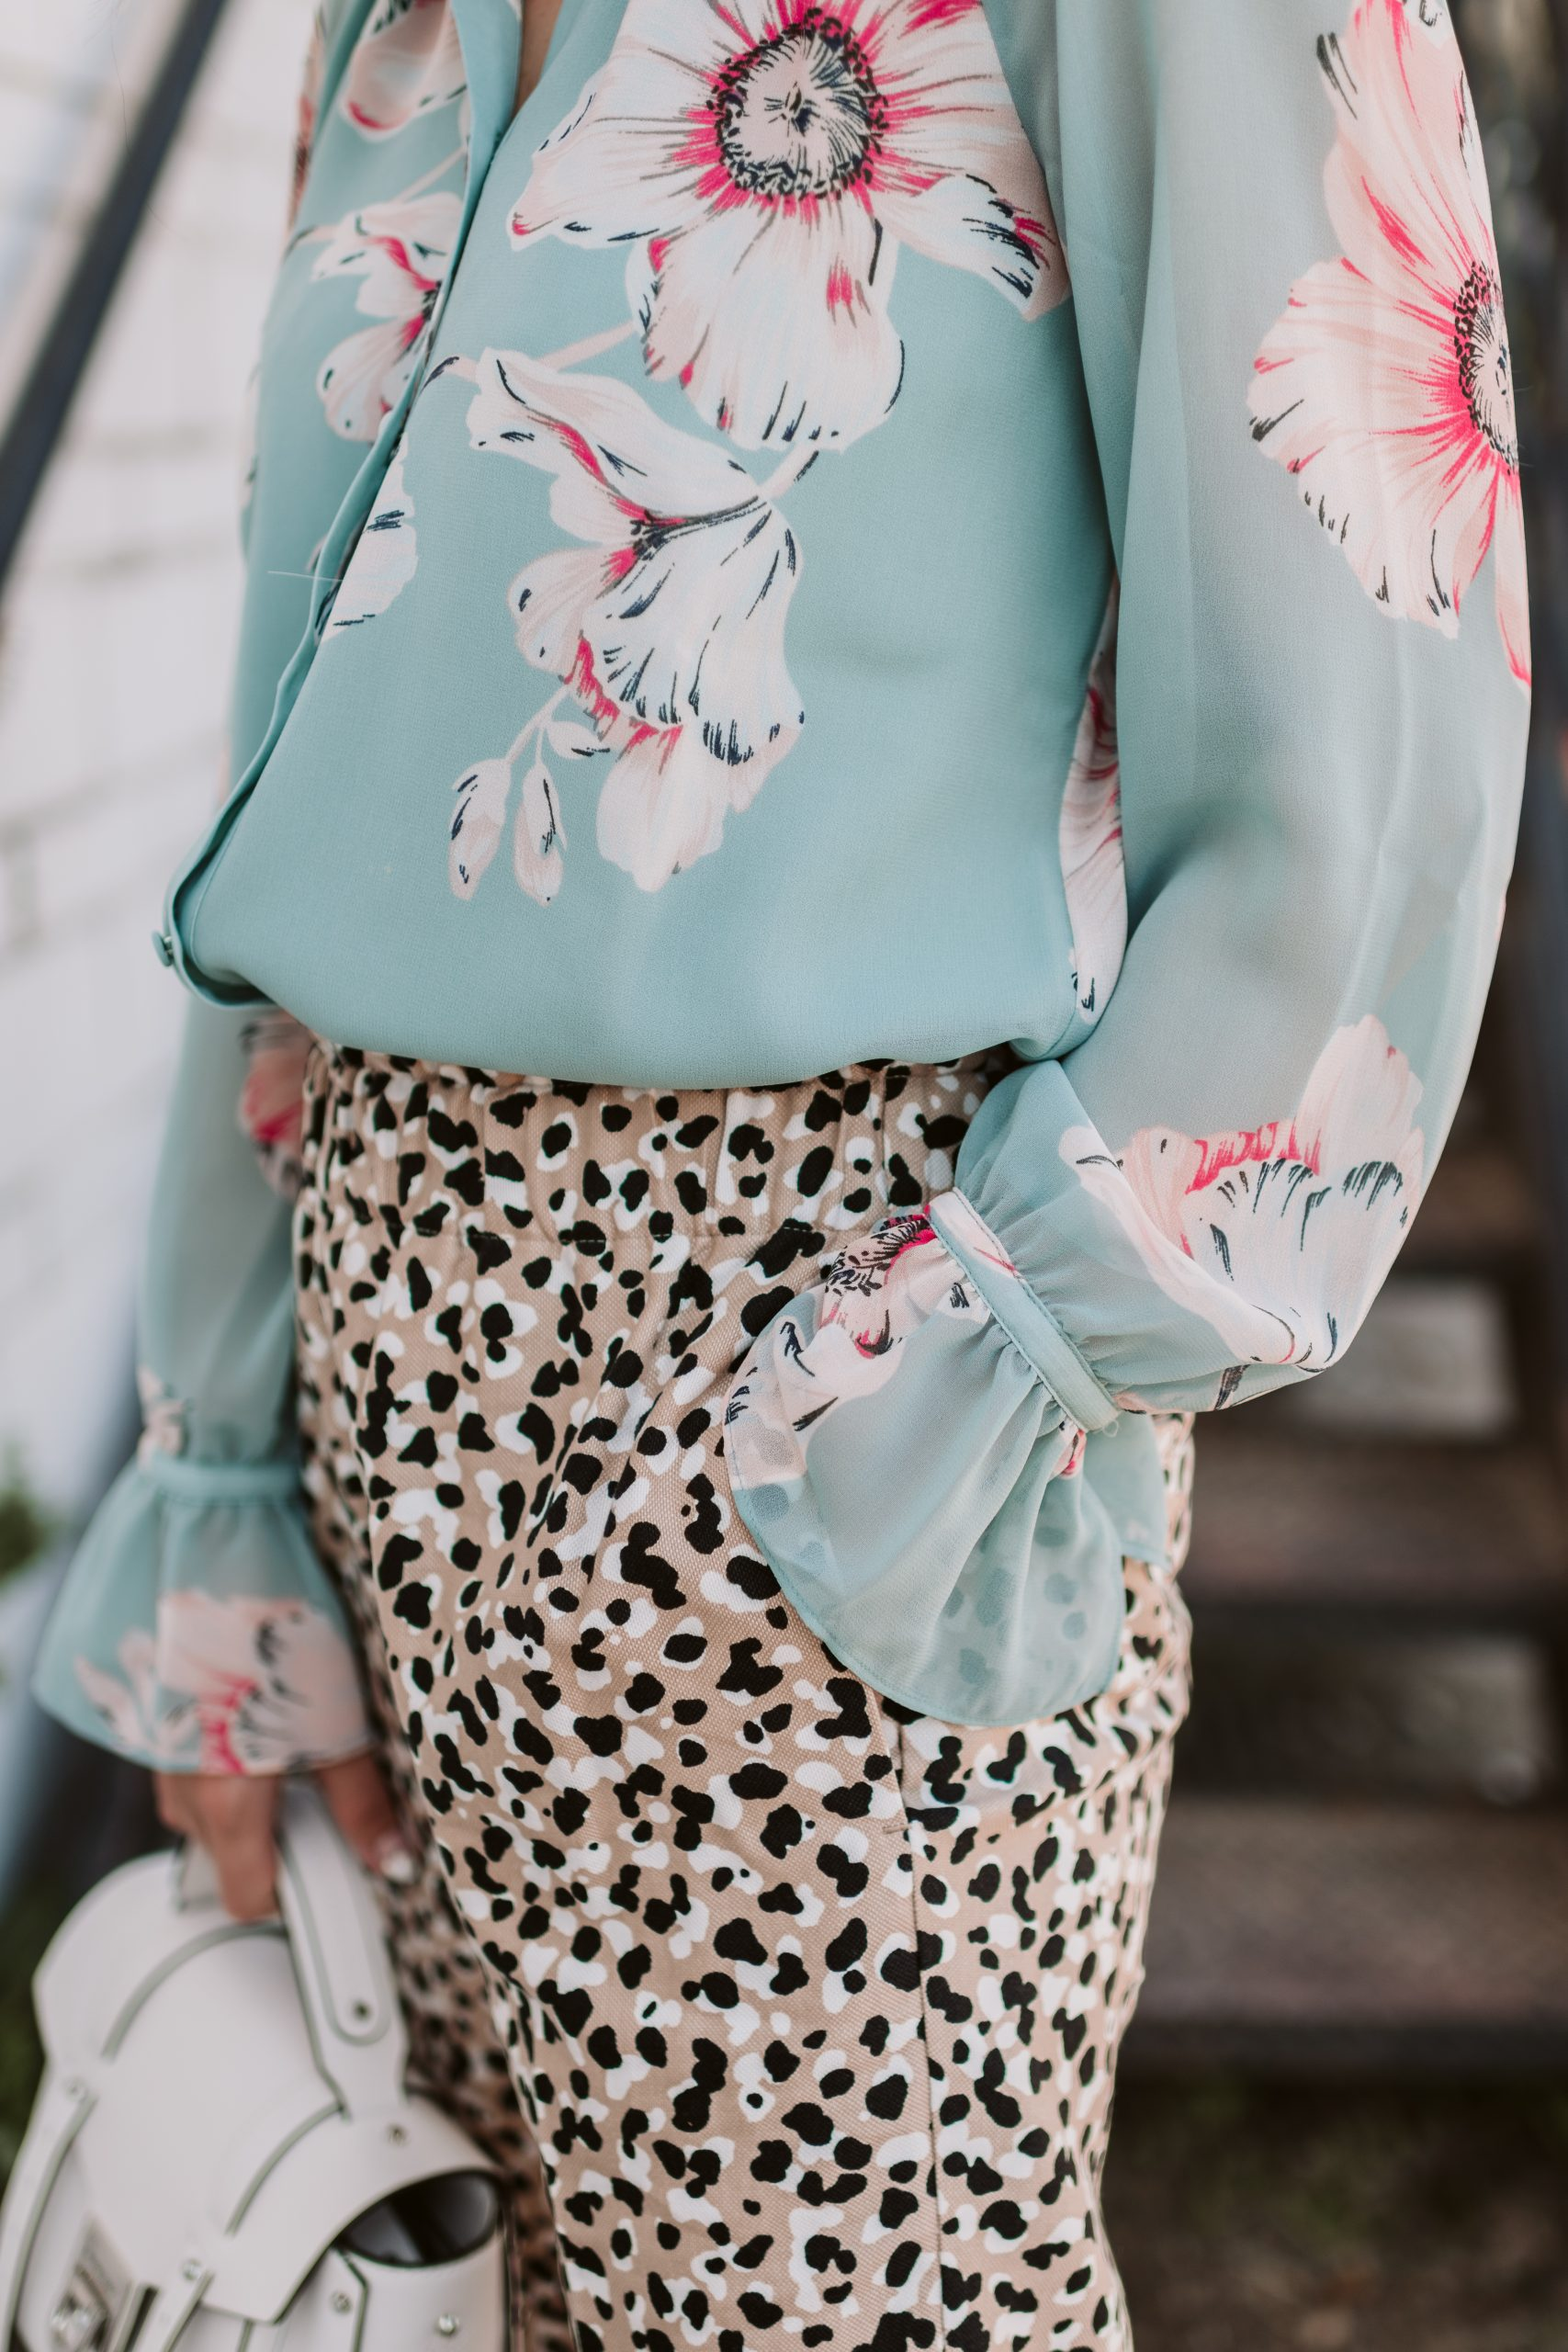 Houston fashion blogger Elly Brown wears a floral top with leopard pants to mix prints